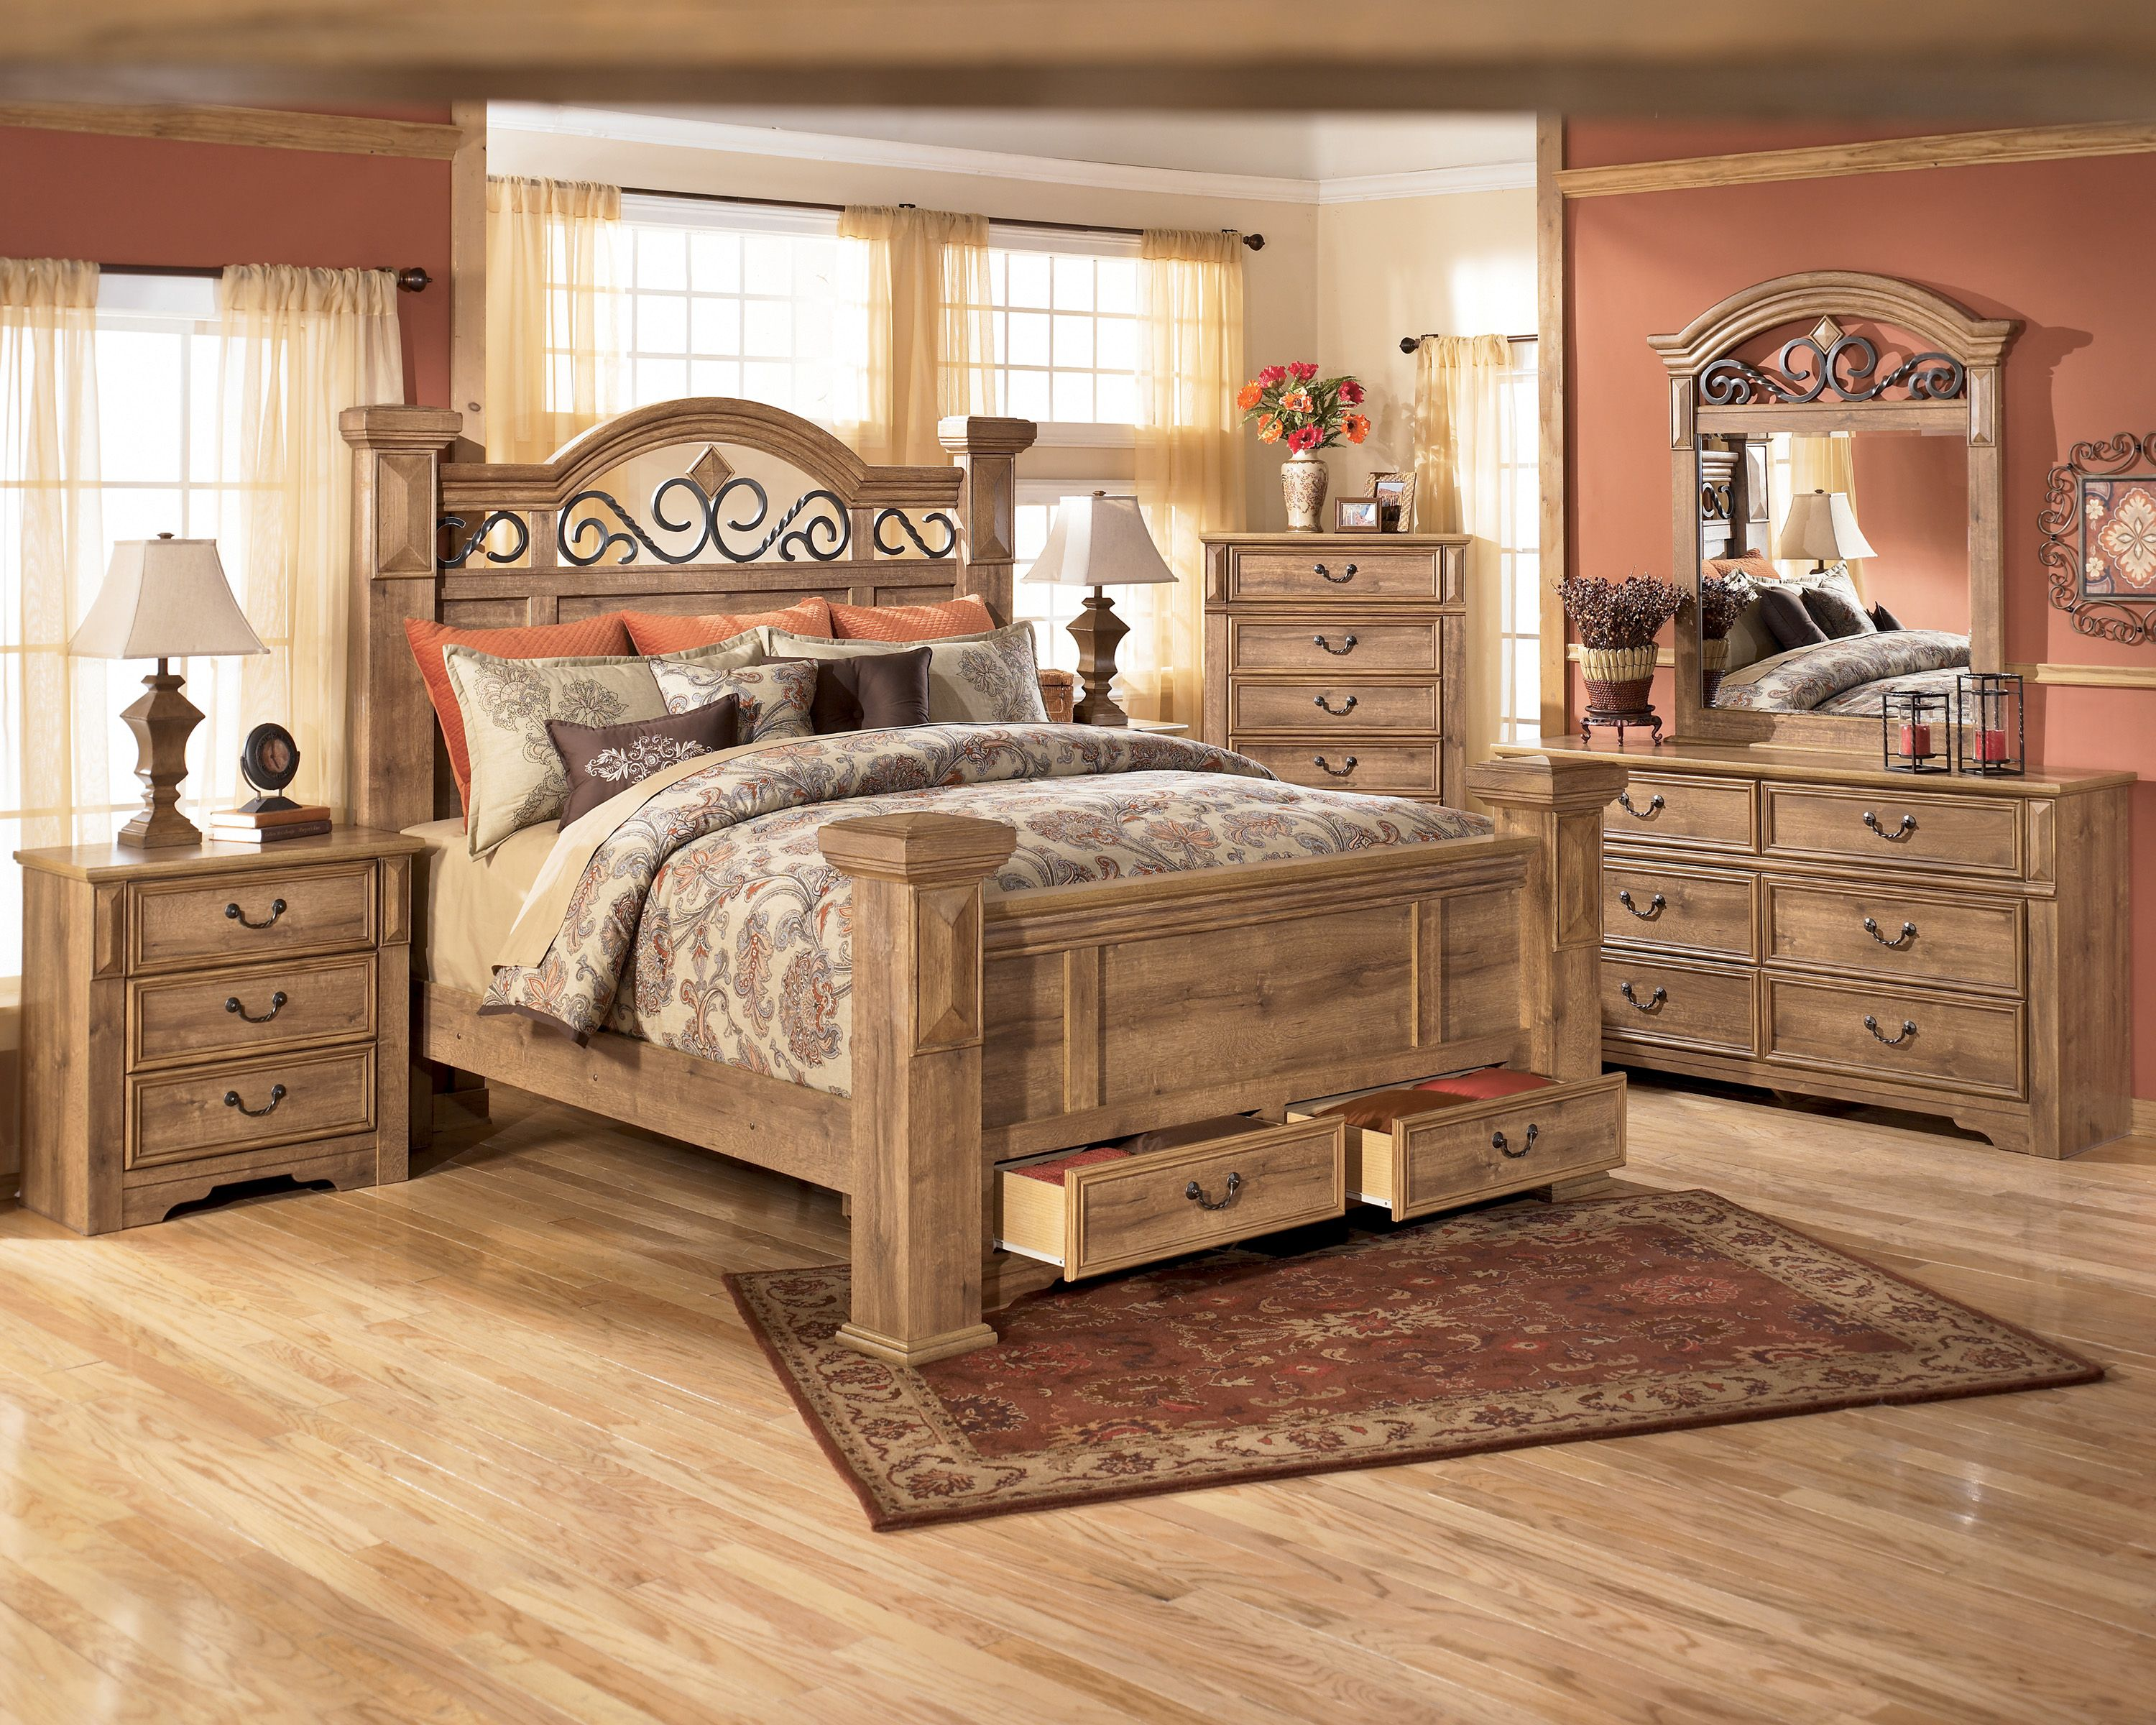 The 25 Best King Size Bedroom Sets Ideas On Pinterest Diy Bed Frame Master Room And Beach Headboard